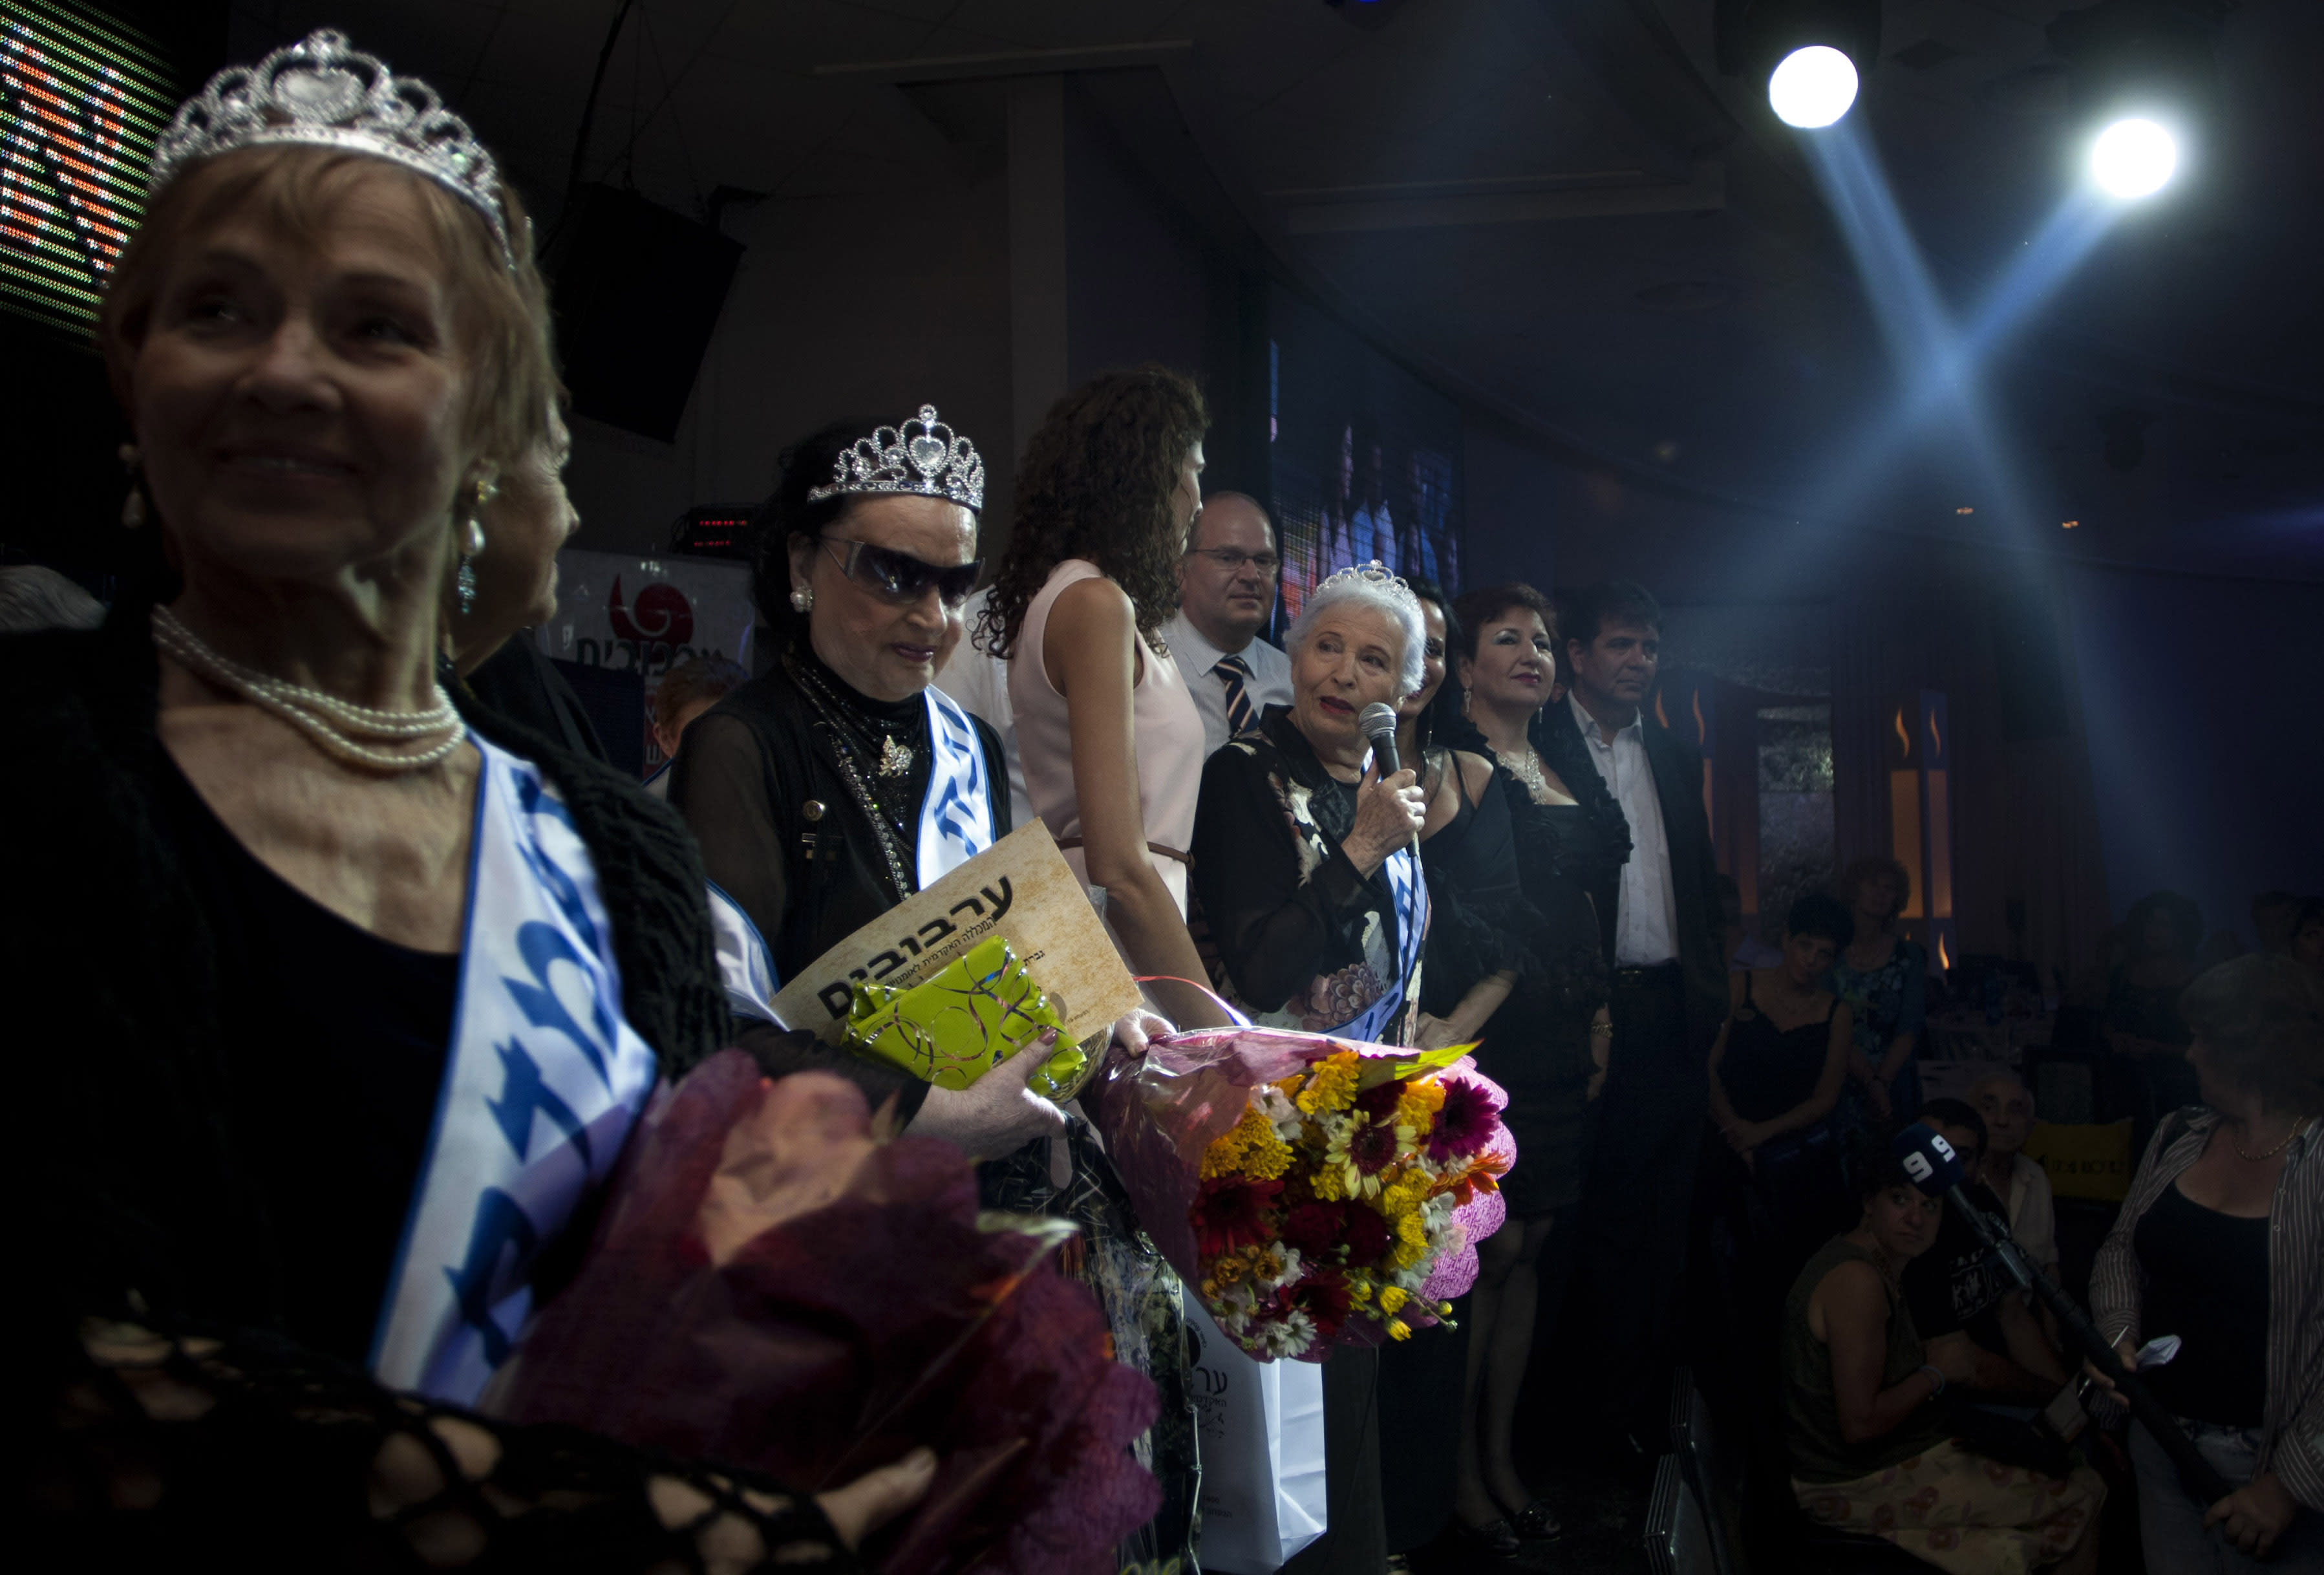 """Hava Hershkovitz, third from right, a Holocaust survivor and winner of a beauty pageant, speaks to the crowd in the northern Israeli city of Haifa, Thursday, June 28, 2012. Fourteen women who lived through the horrors of World War II paraded on stage Thursday night in an unusual pageant, vying for the honor of being Israel's first """"Miss Holocaust Survivor."""" (AP Photo/Sebastian Scheiner)"""